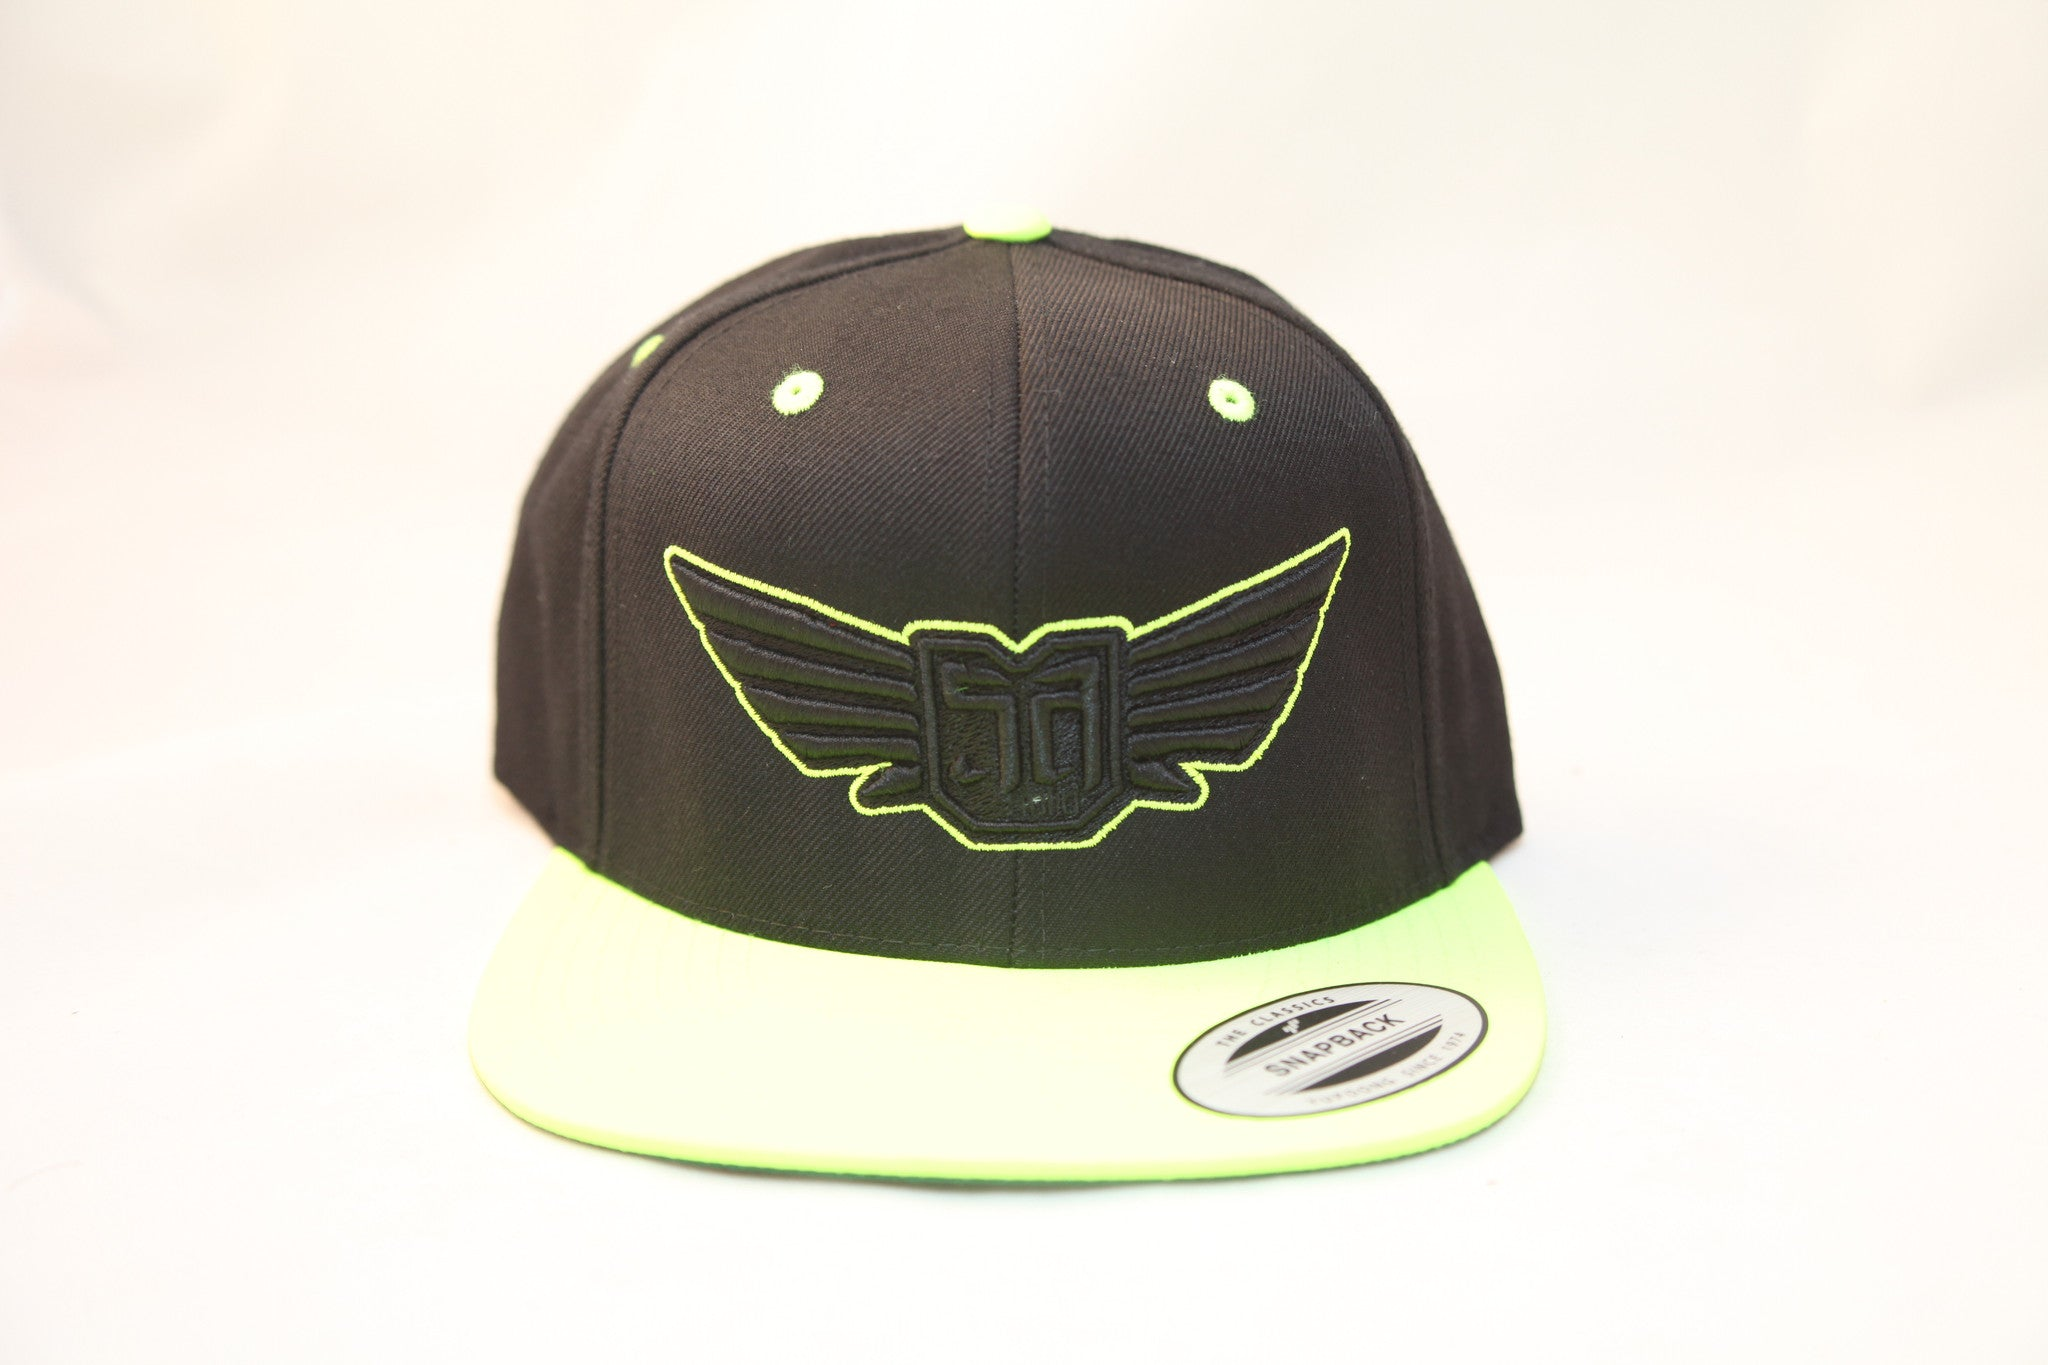 AV8 - FLEXFIT SNAP BACK HAT - BLACK / GREEN - BLK / GRN LOGO